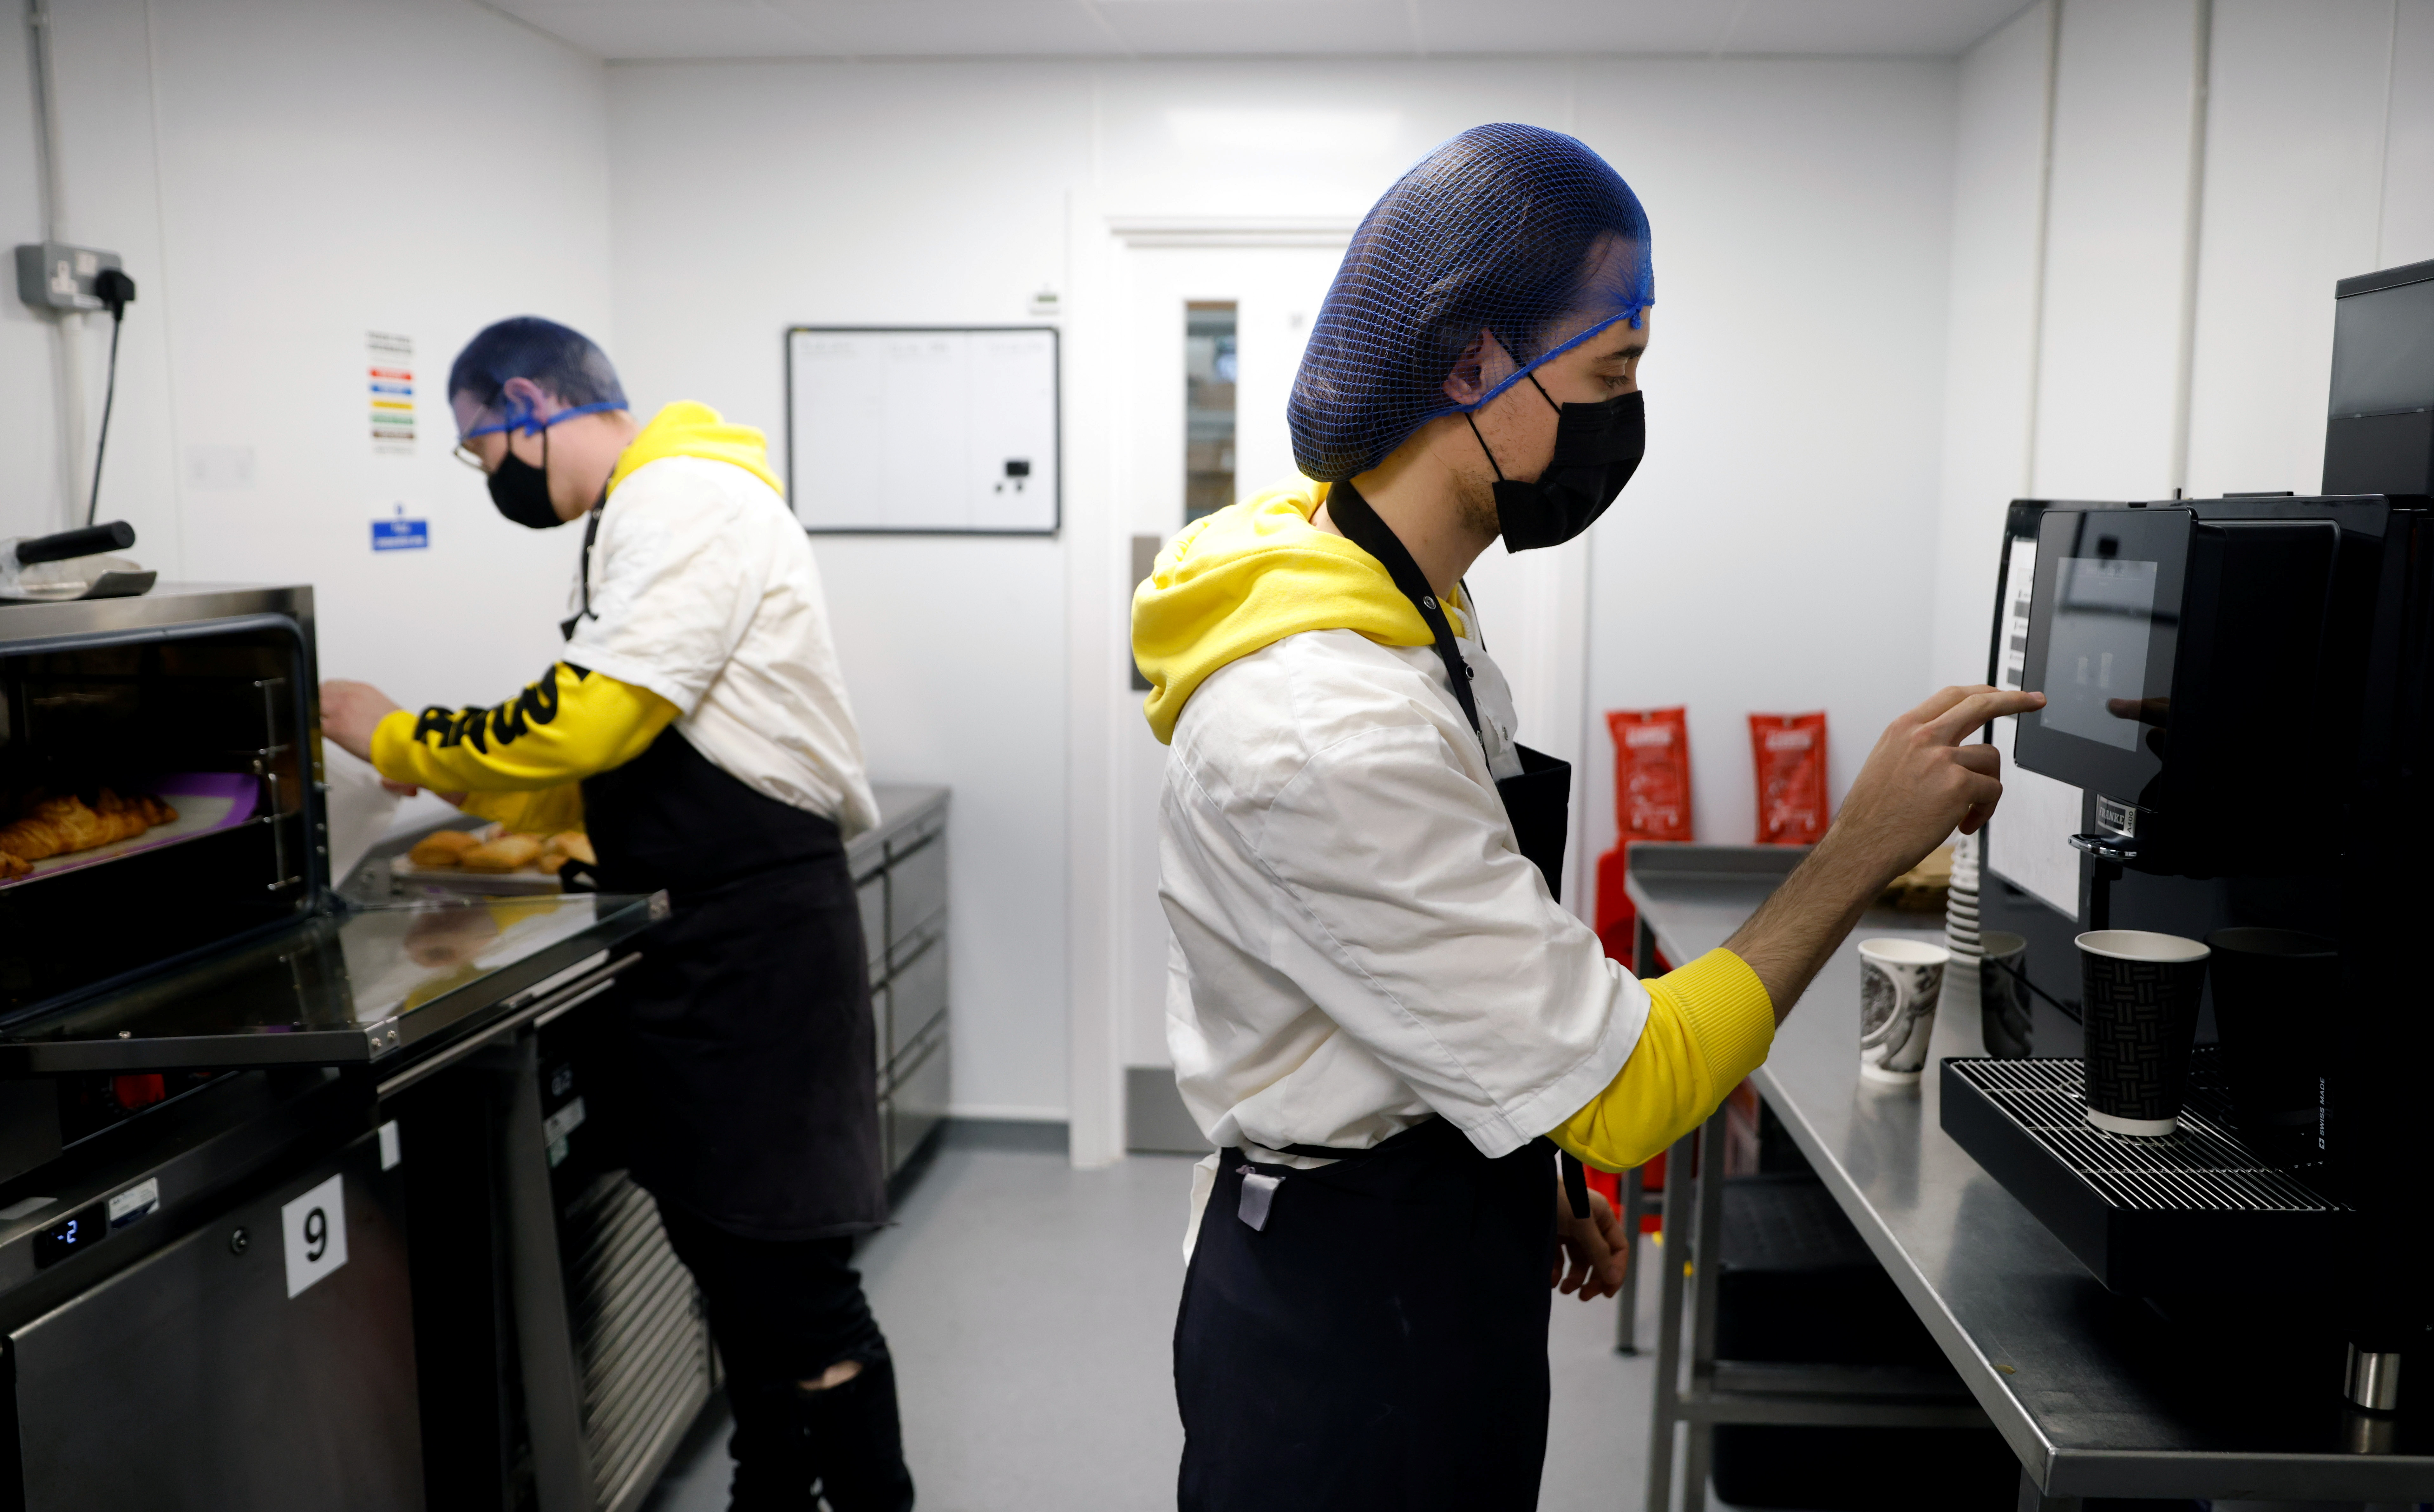 Yango Deli staff members prepare coffee and hot food for test deliveries in the kitchen prior to the opening of their new store in London, Britain, October 6, 2021. Picture taken October 6, 2021. REUTERS/John Sibley